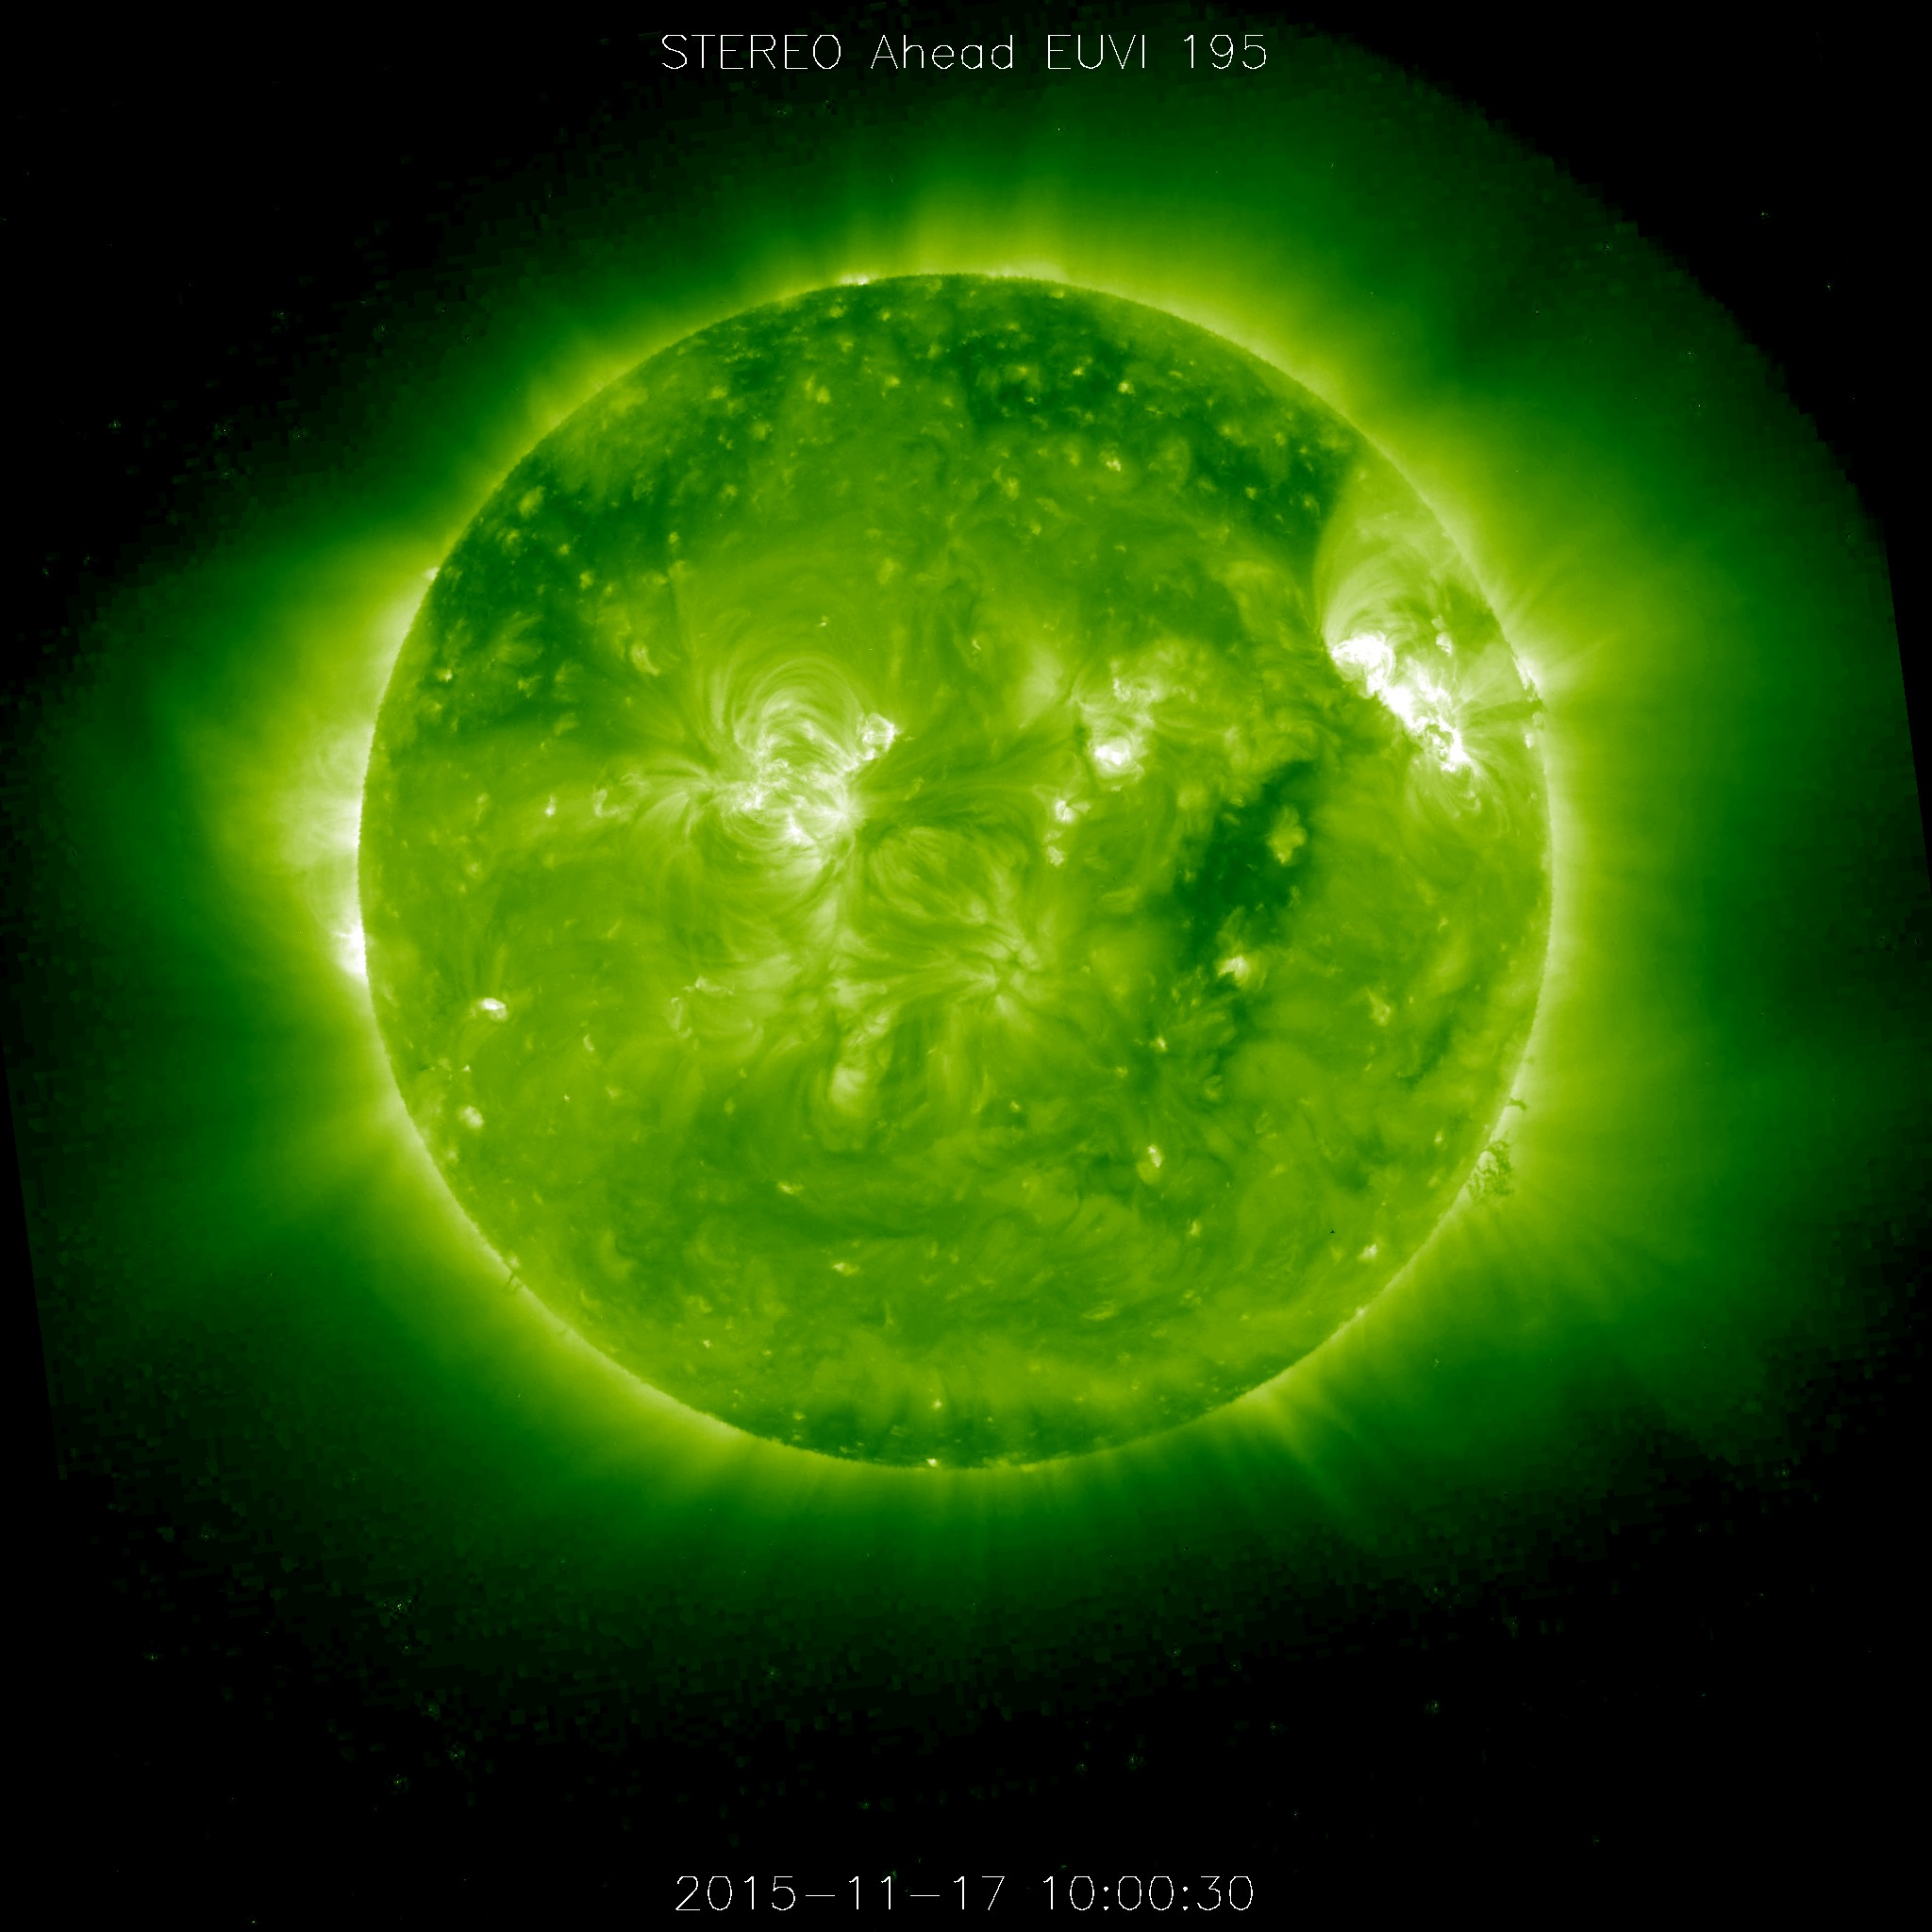 STEREO's First View of the Sun | NASA